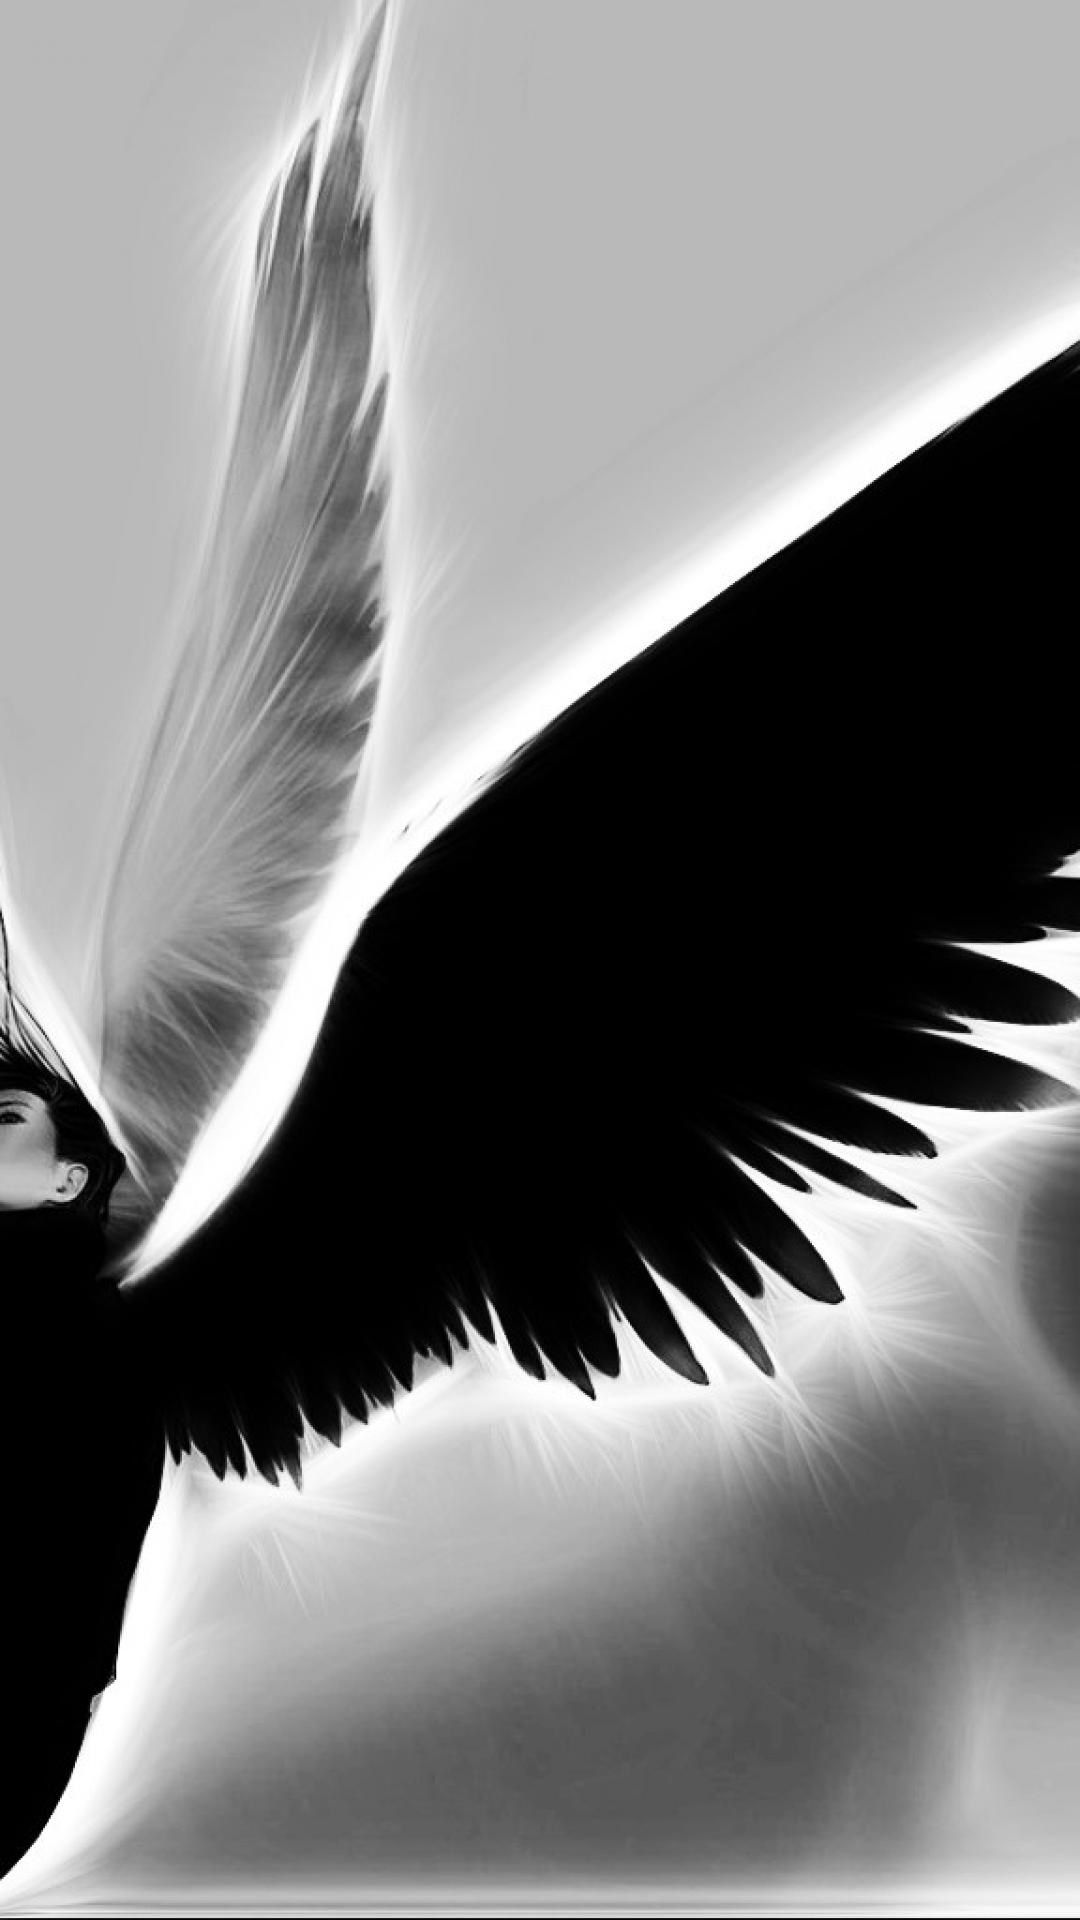 My Guardian Angel Black And White Iphone Wallpaper Black And White Wallpaper Iphone Iphone Wallpaper White Iphone